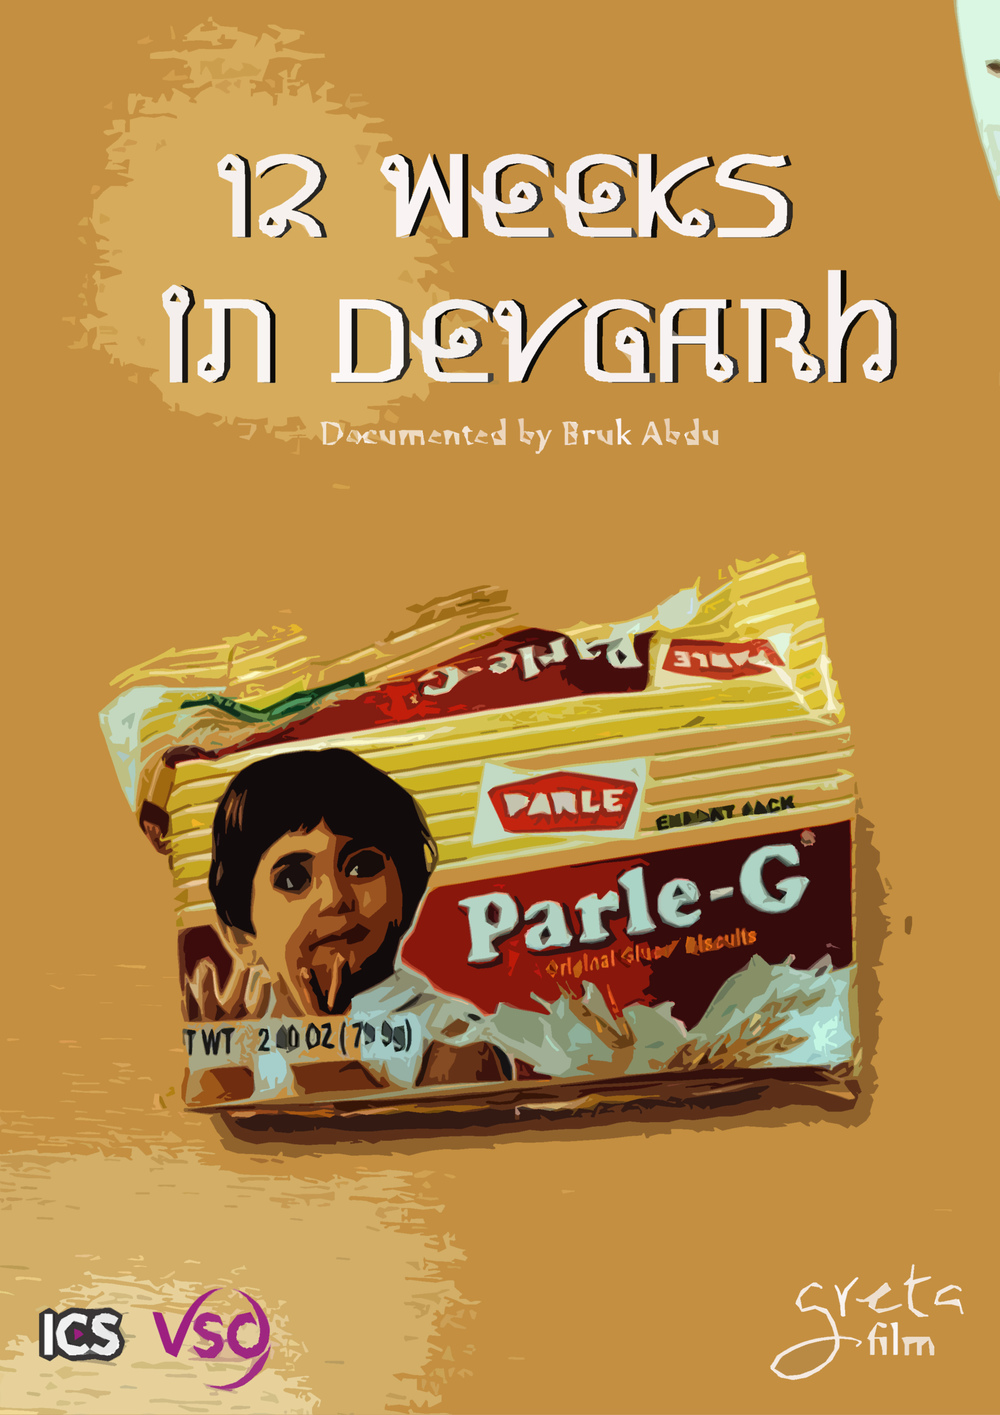 '12 Weeks in Devgarh' Digital Poster  (KURB Doc)    A digital poster used to build anticipation for the upcoming release - '12 Weeks in Devgarh'. A journey of a VSO Volunteer, 3 months in the heart of Devgarh. Check the full   journey here  .  (Documentary) Blog:  kurbdocumentaries.wordpress.com